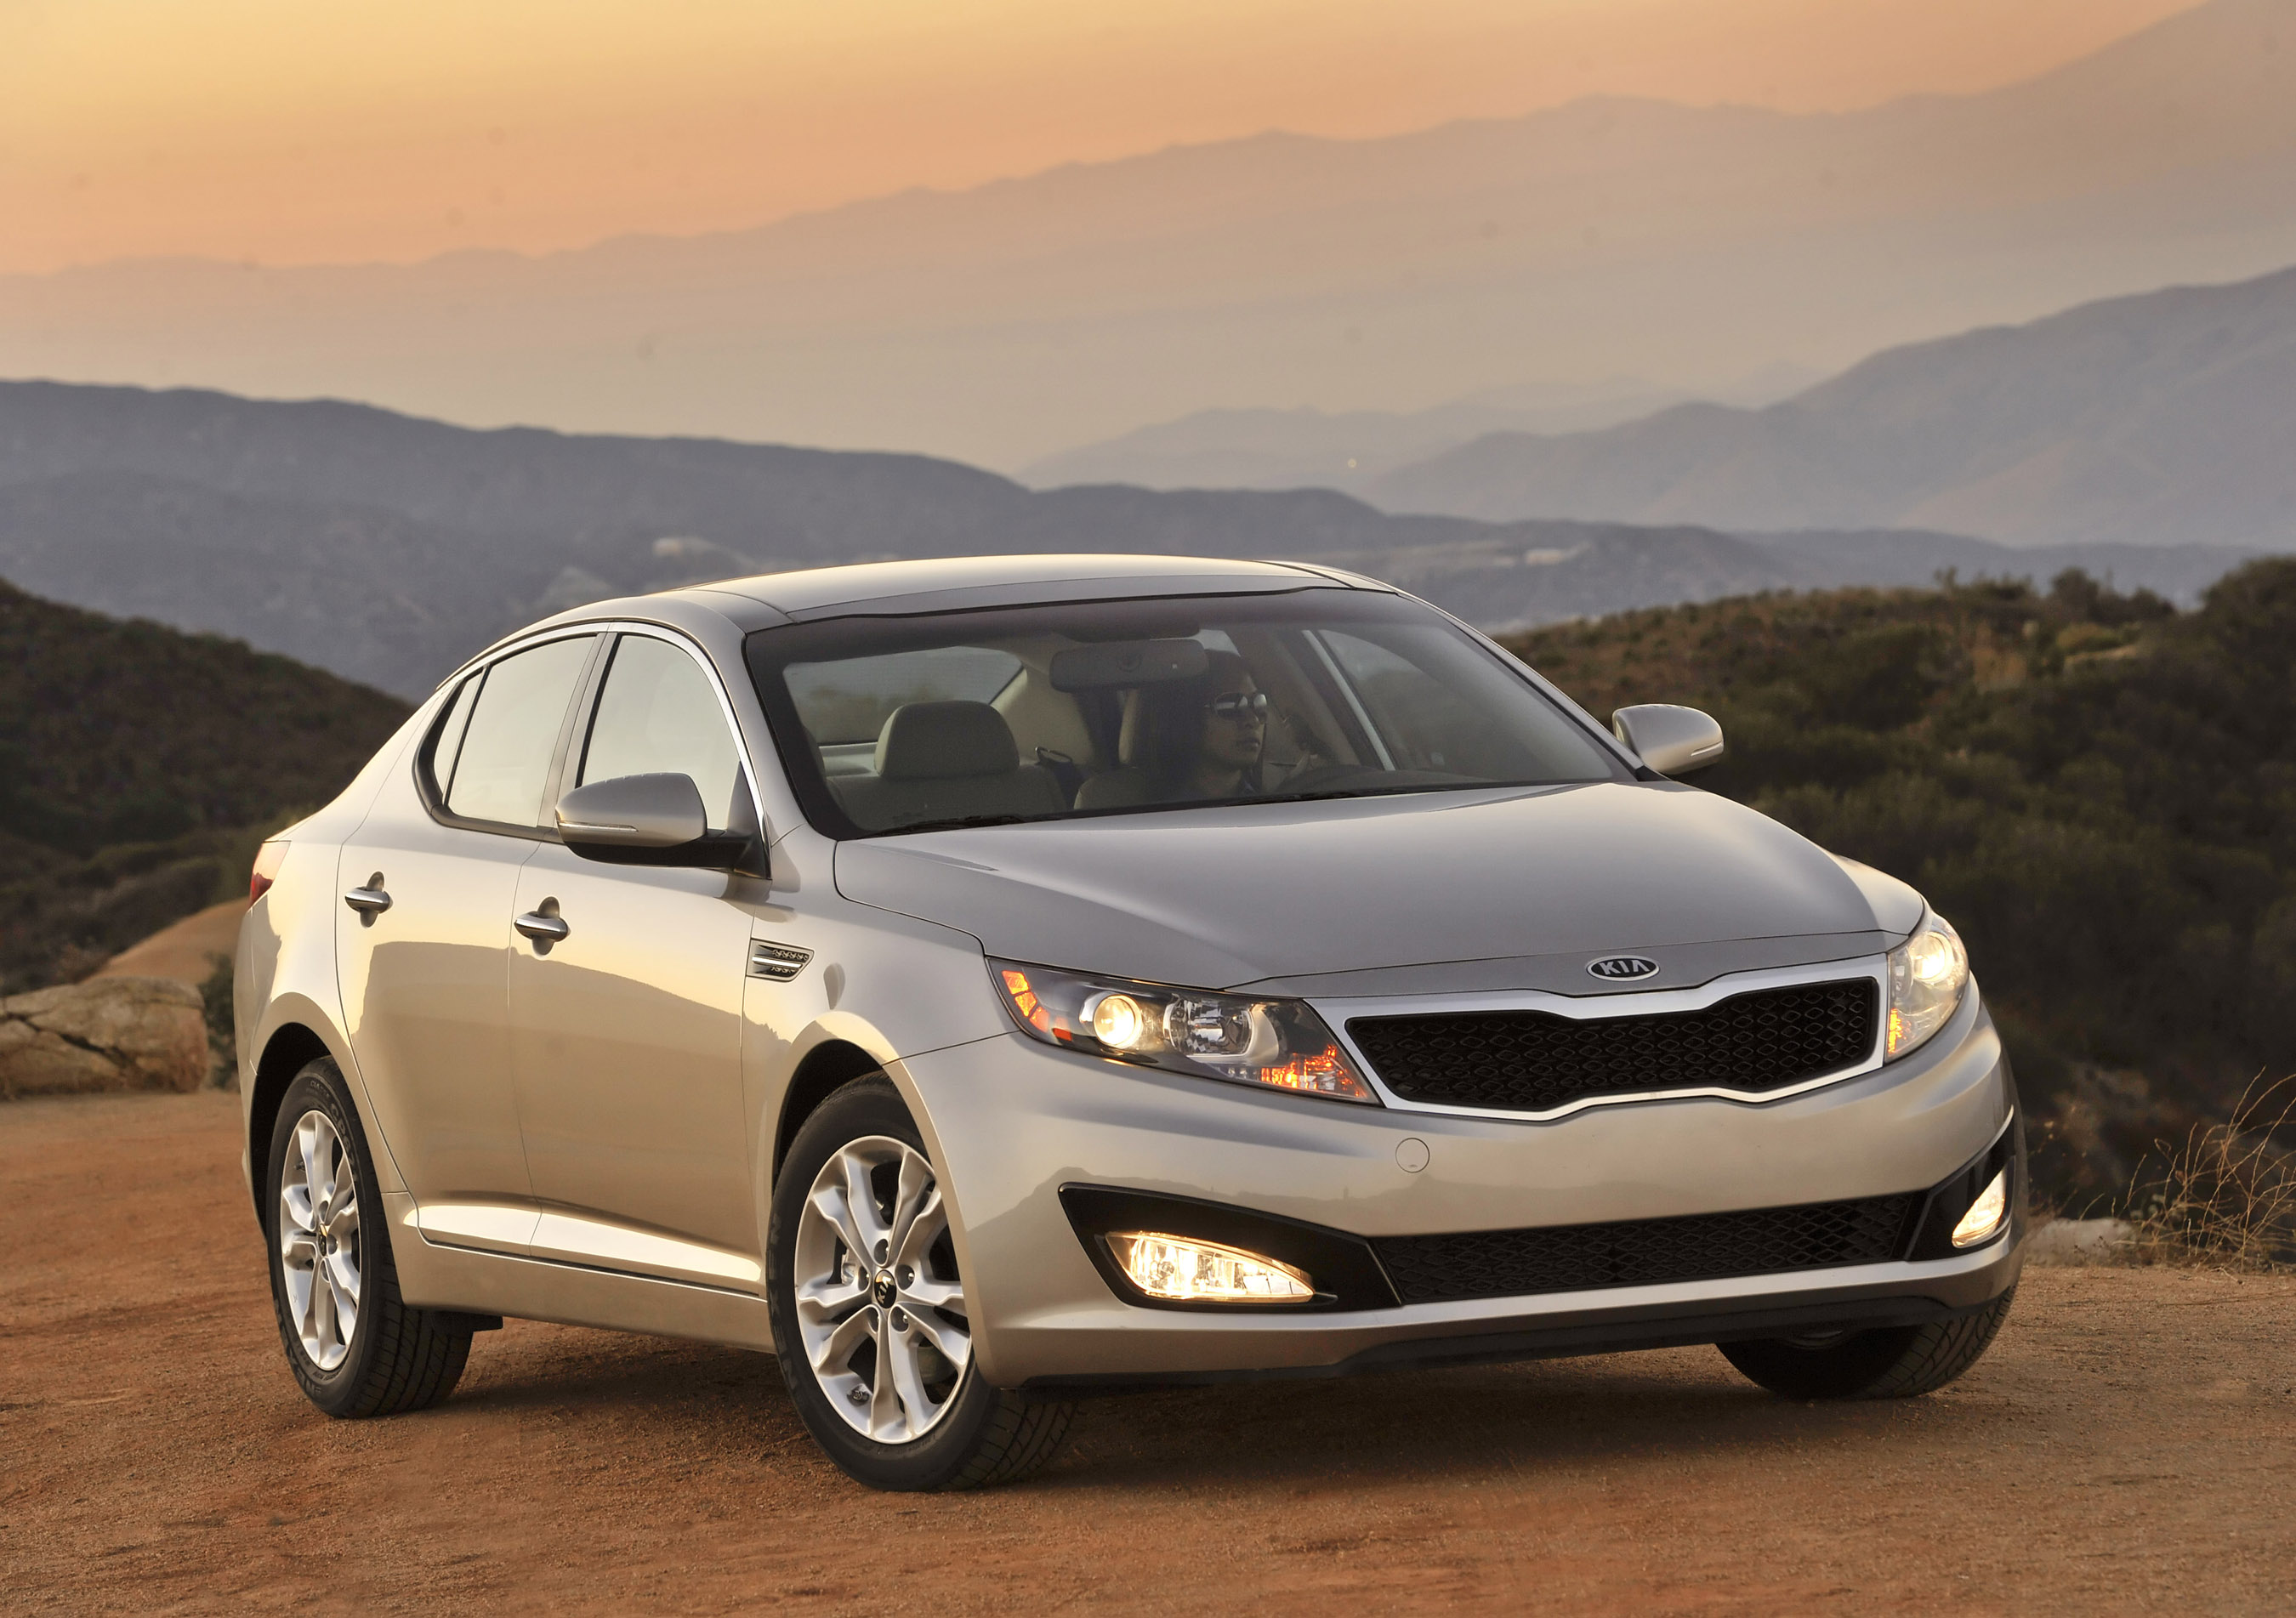 2011 kia optima honored as best of 2011 by cars com rh theautochannel com 2009 Kia Optima 2016 Kia Optima